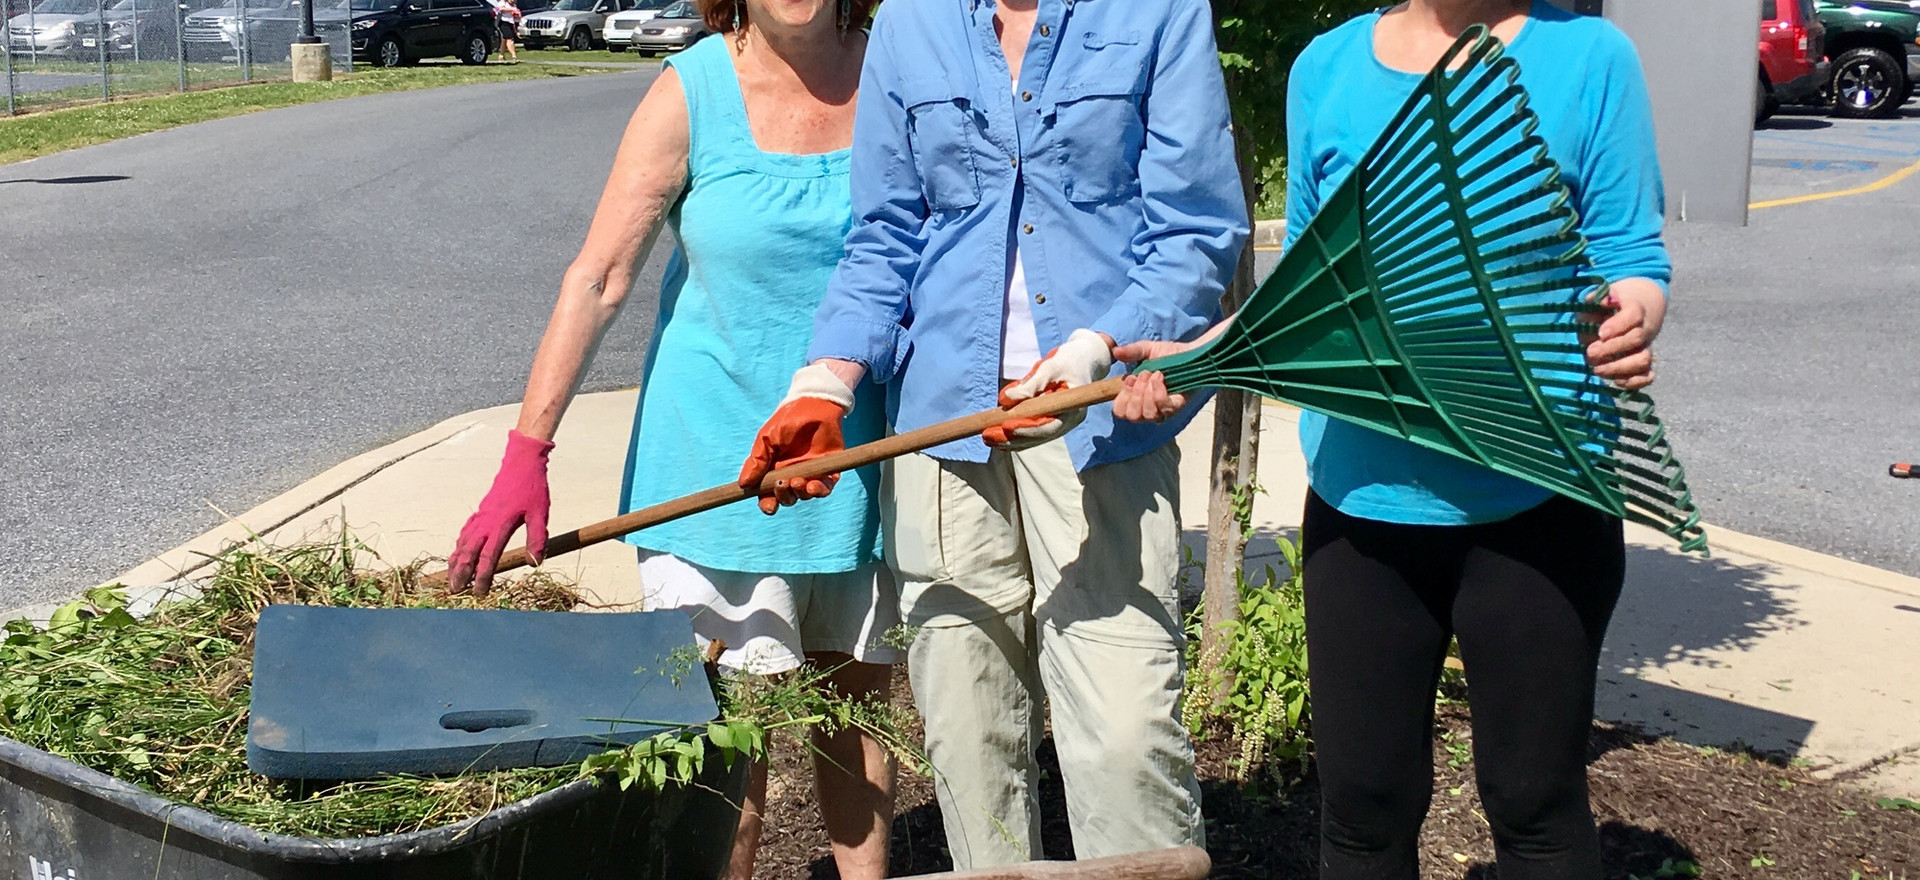 Lord Baltimore Garden Clean Up 2017 PIC